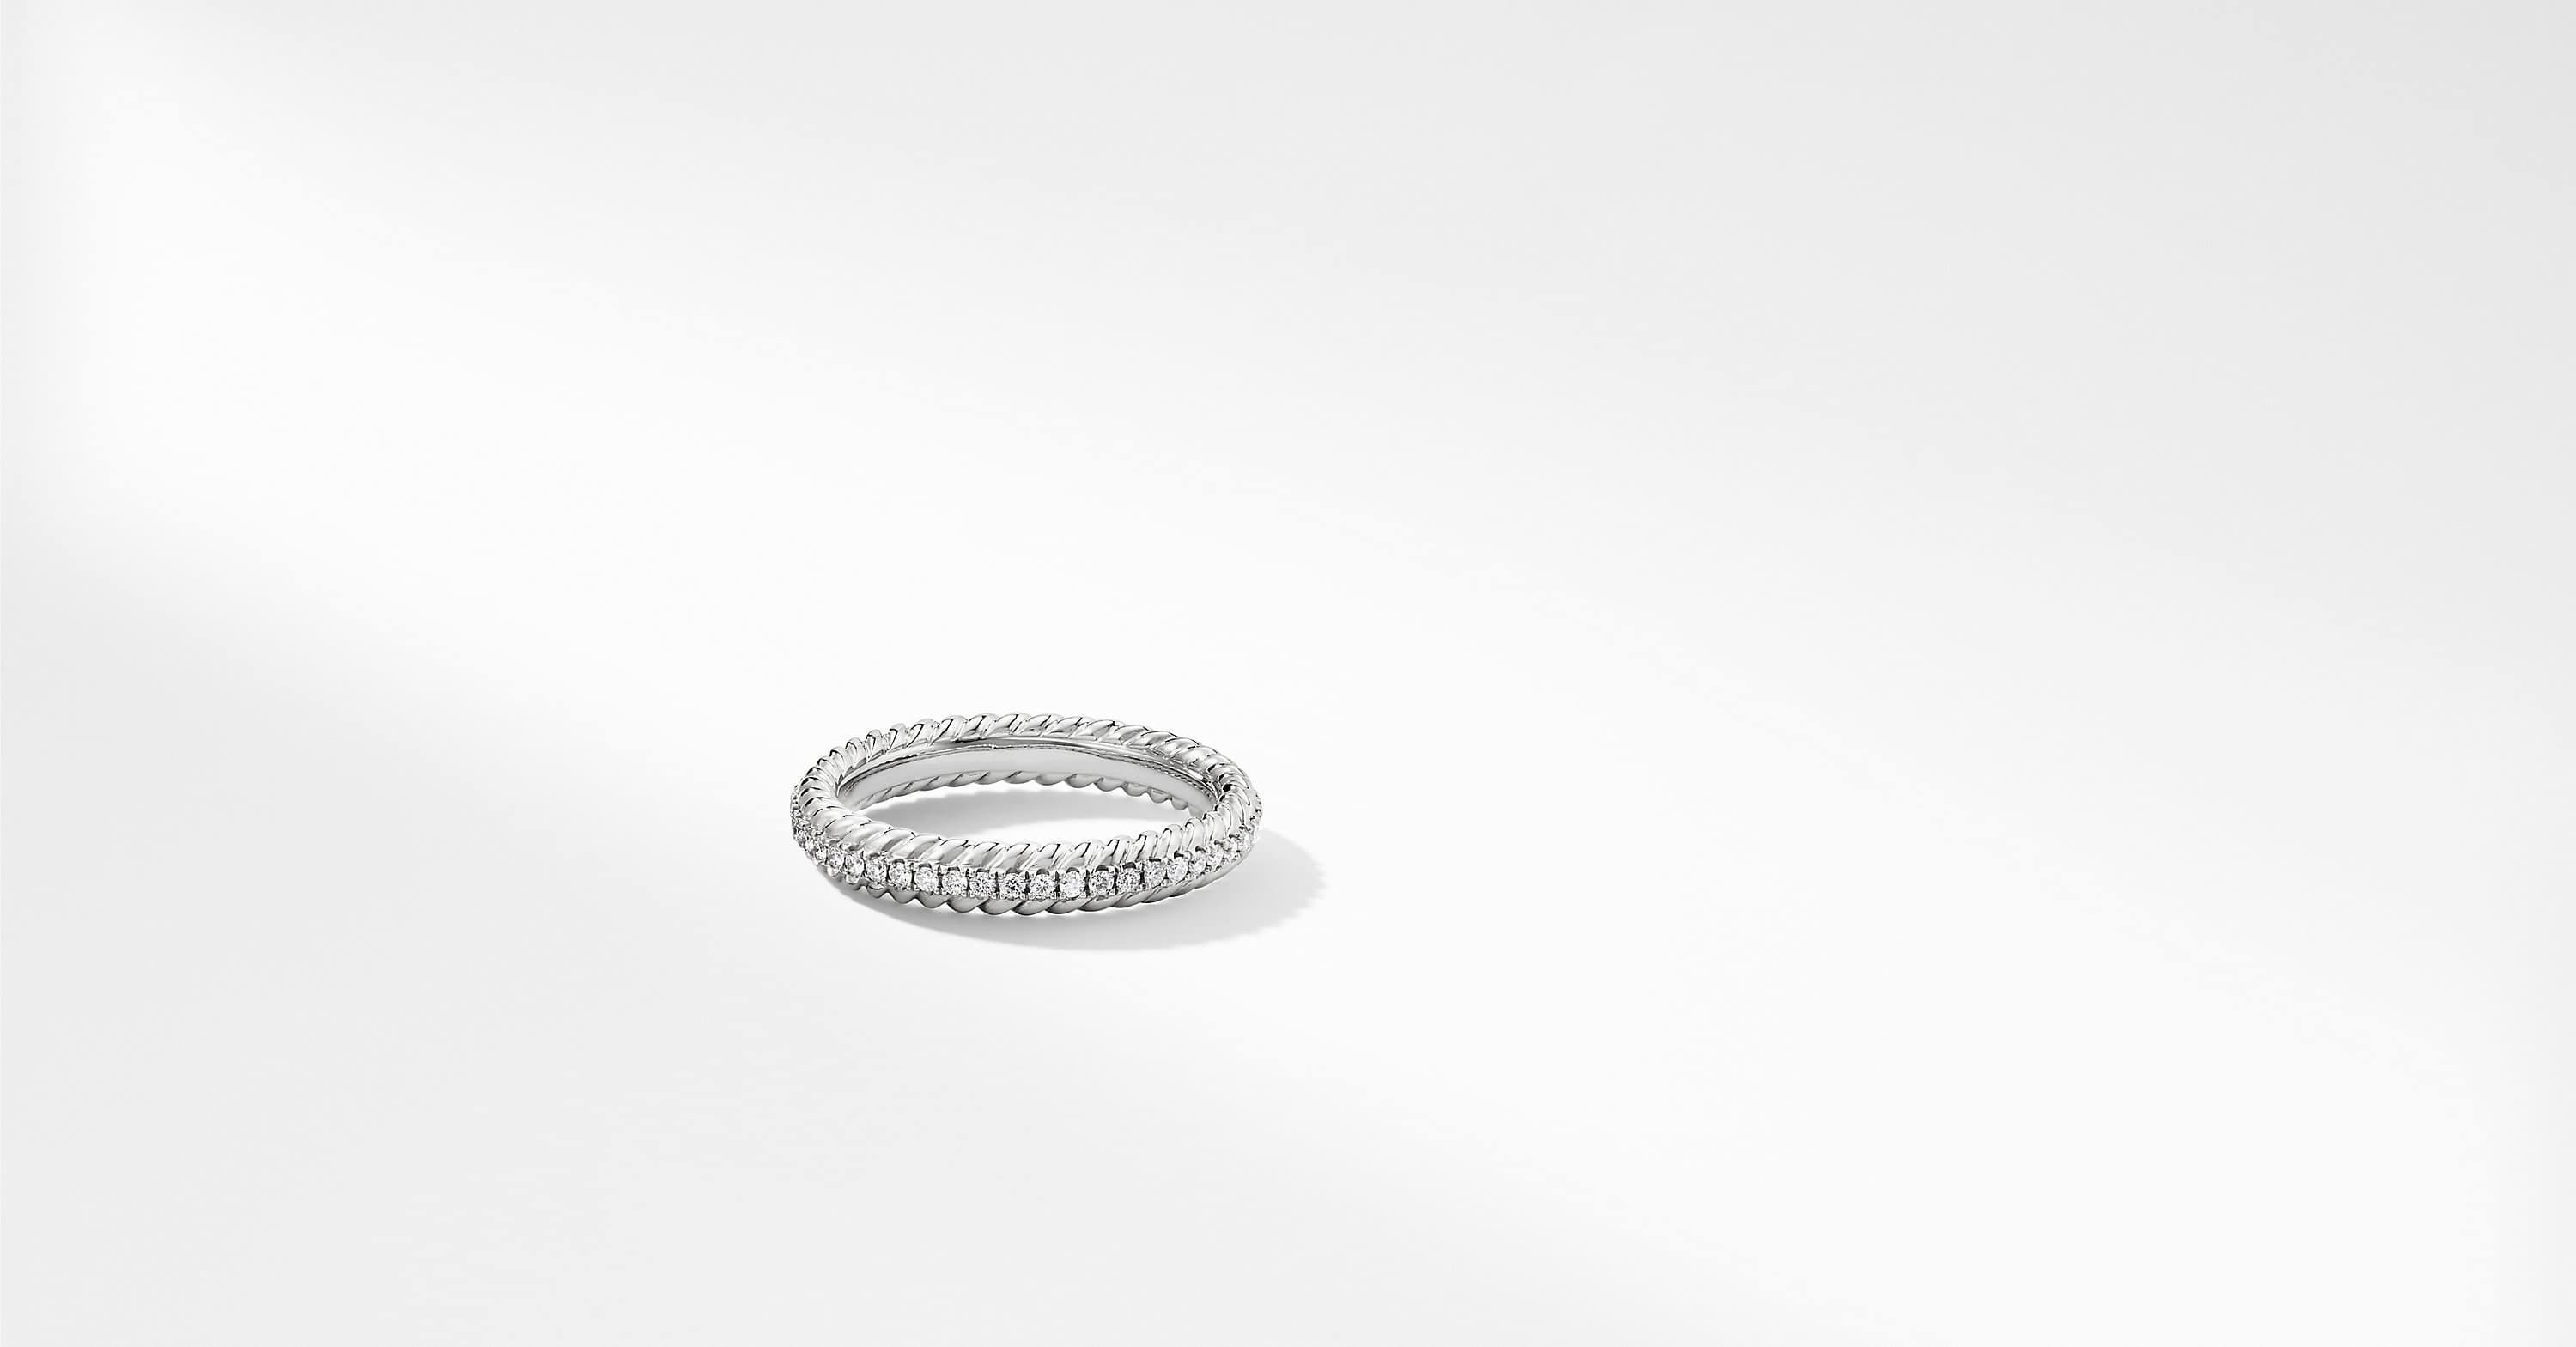 DY Unity Pavé Wedding Band with Diamonds in Platinum, 4mm